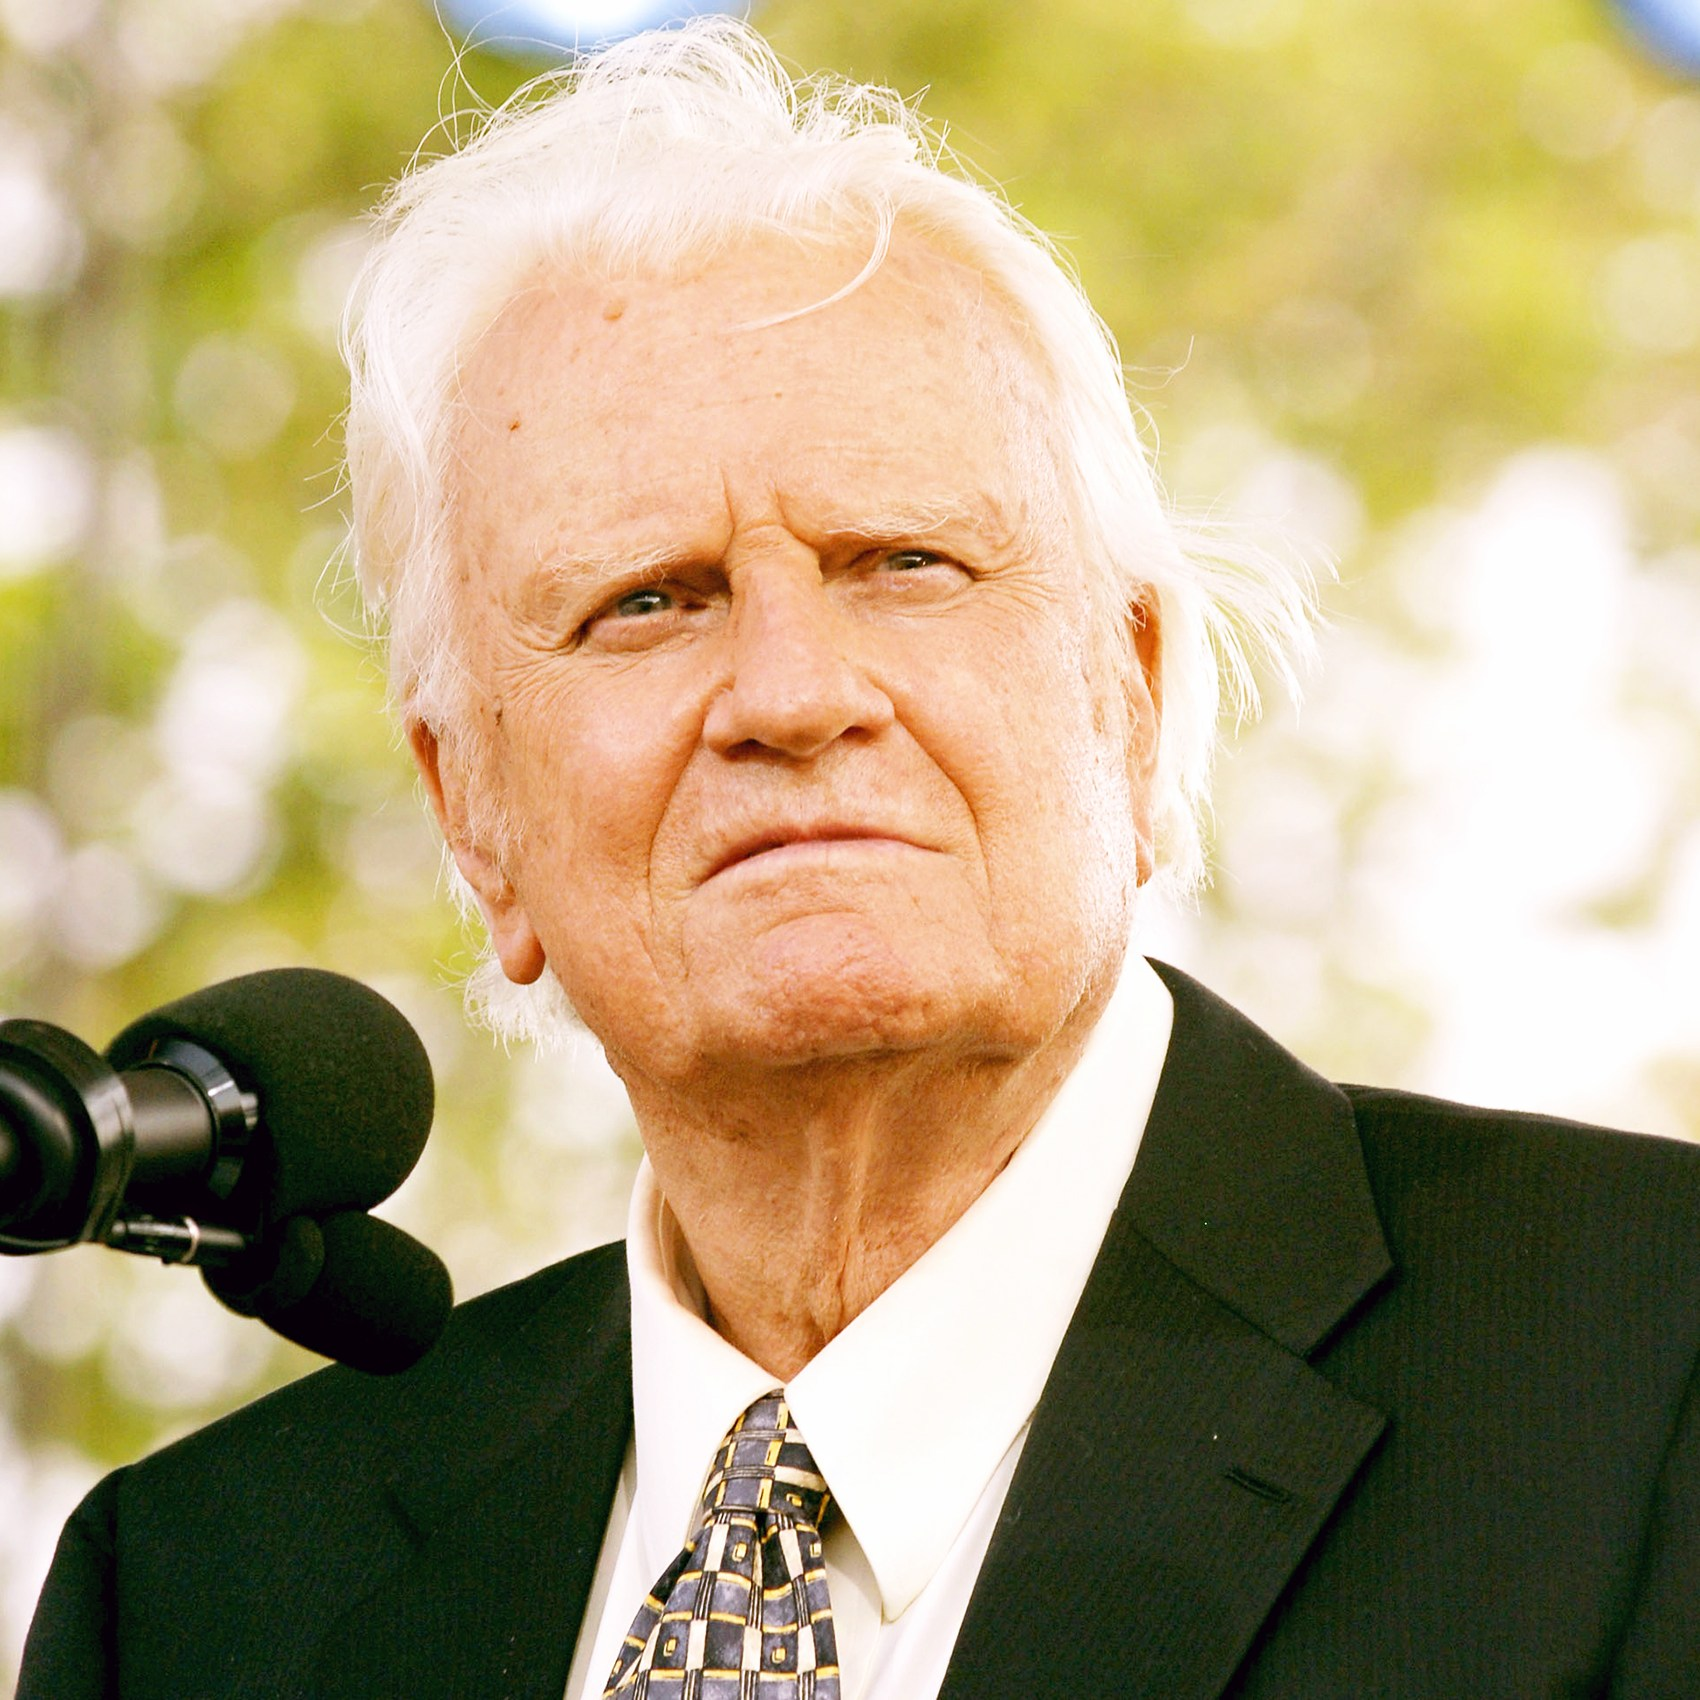 Pastor Billy Graham